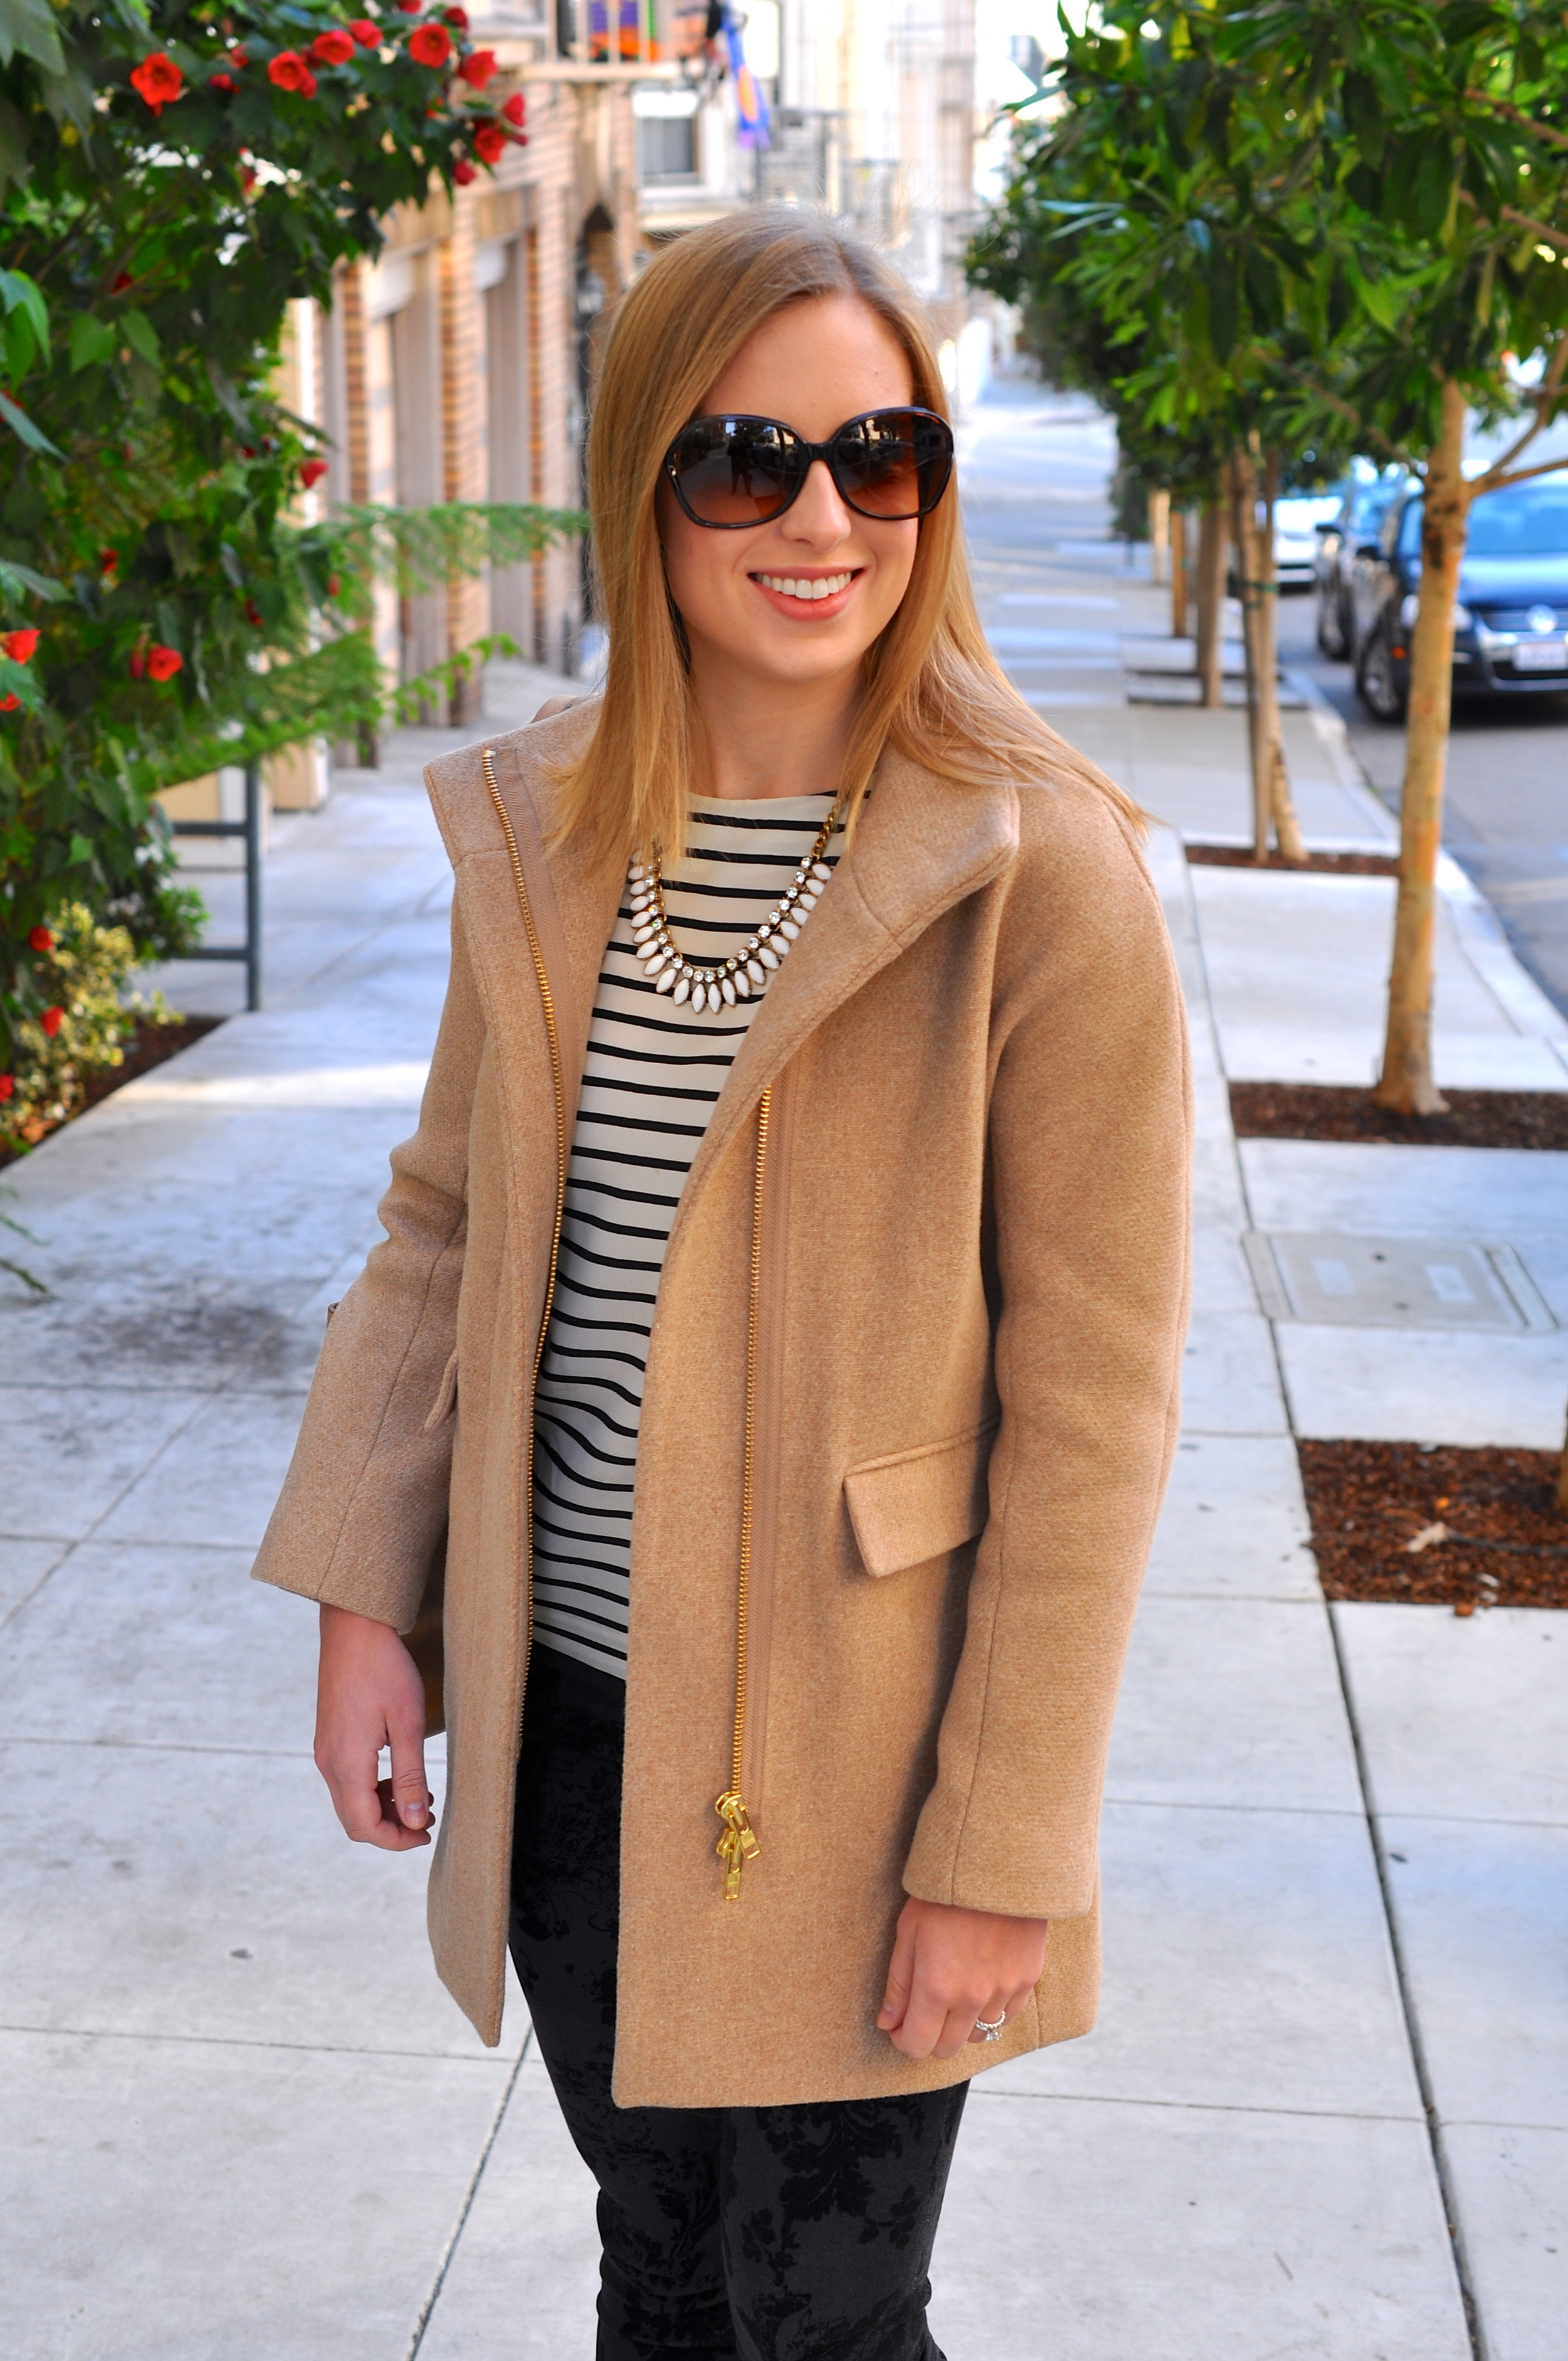 J. Crew coat, J. Crew blouse (love this version), Current/Elliot velvet jeans, Sam Edelman booties, J. Crew necklace (similar), TEXI leather bag, Coach sunglasses (old)